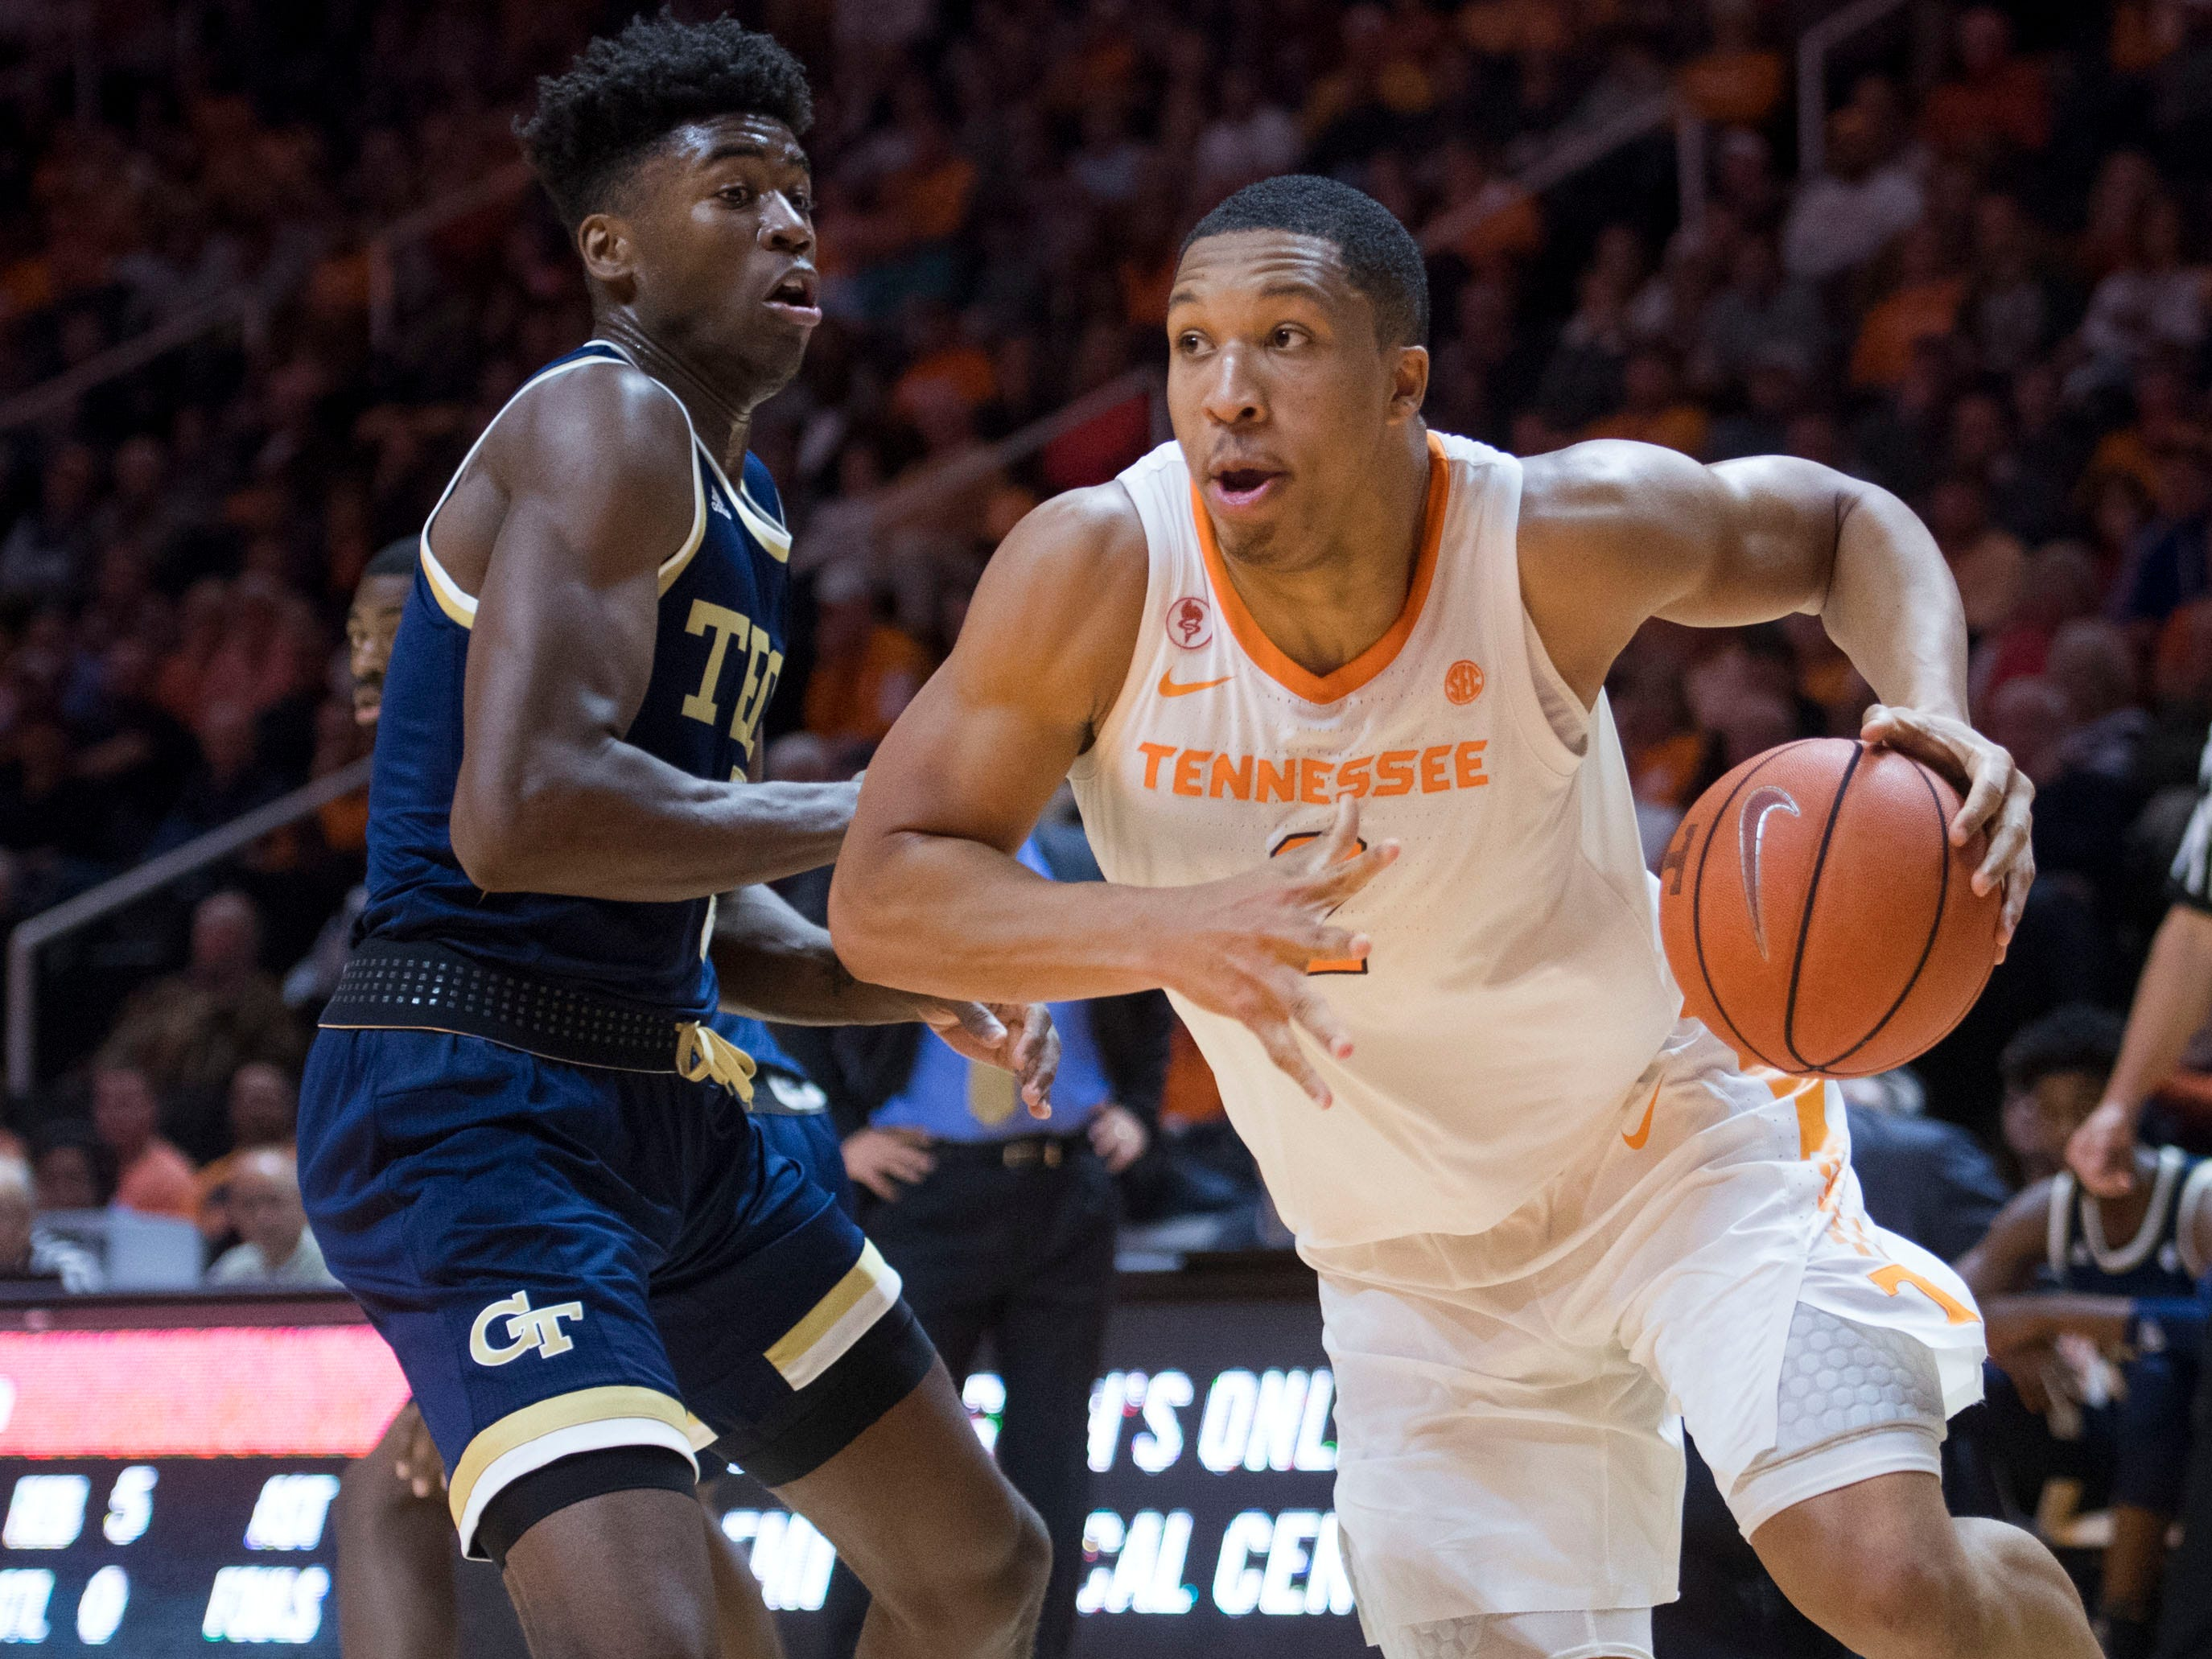 Tennessee's Grant Williams (2) drives towards the basket while defended by Georgia Tech's Moses Wright (5) at Thompson-Boling Arena on Tuesday, November 13, 2018.